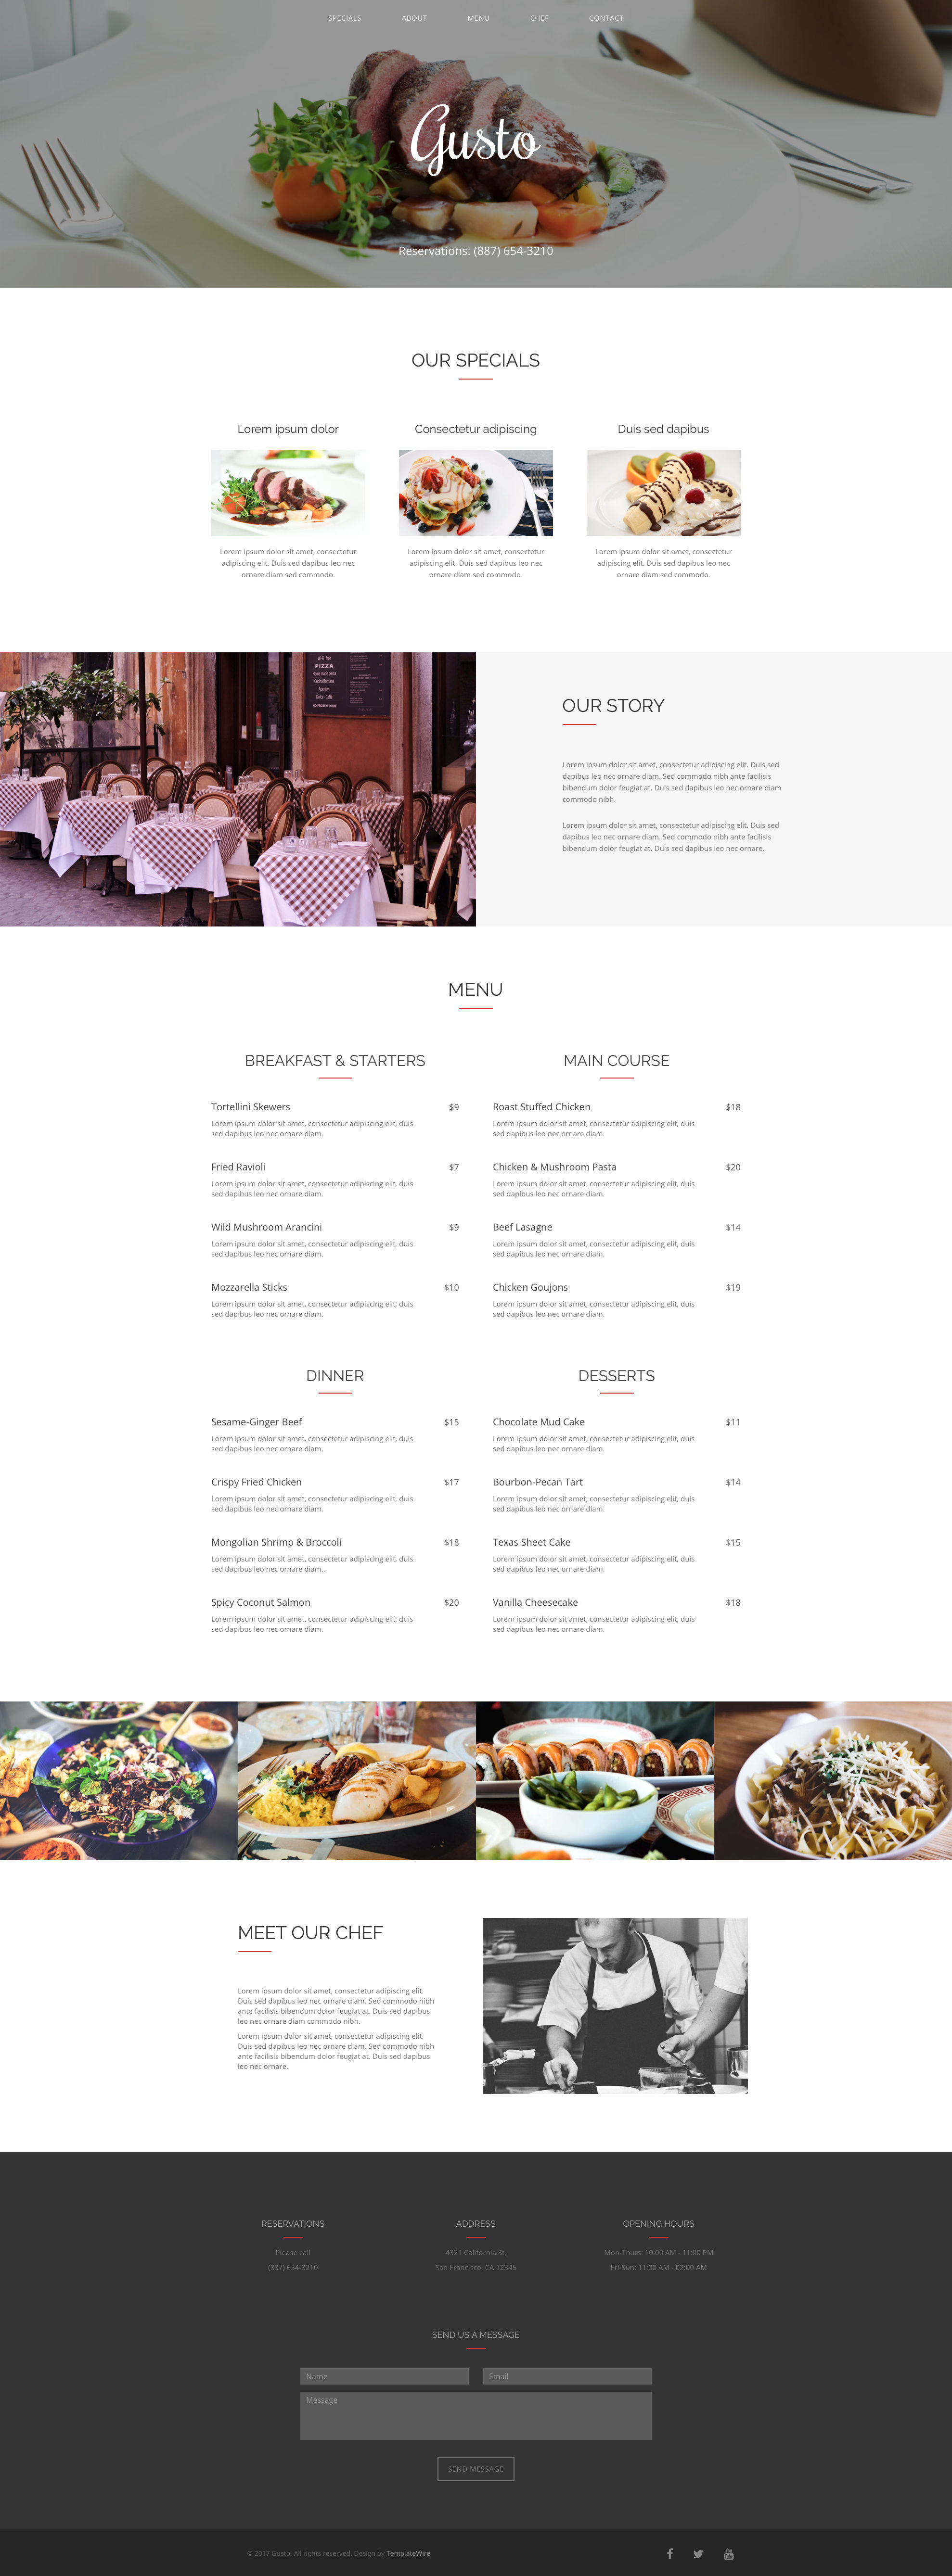 Gusto free HTML Template is a clean and elegant free one page restaurant HTML5 website template. It is clean layout makes it an ideal template for restaurants and food related websites. Gusto free HTML Template is fully responsive and comes with Bootstrap 4 CSS Grid System.